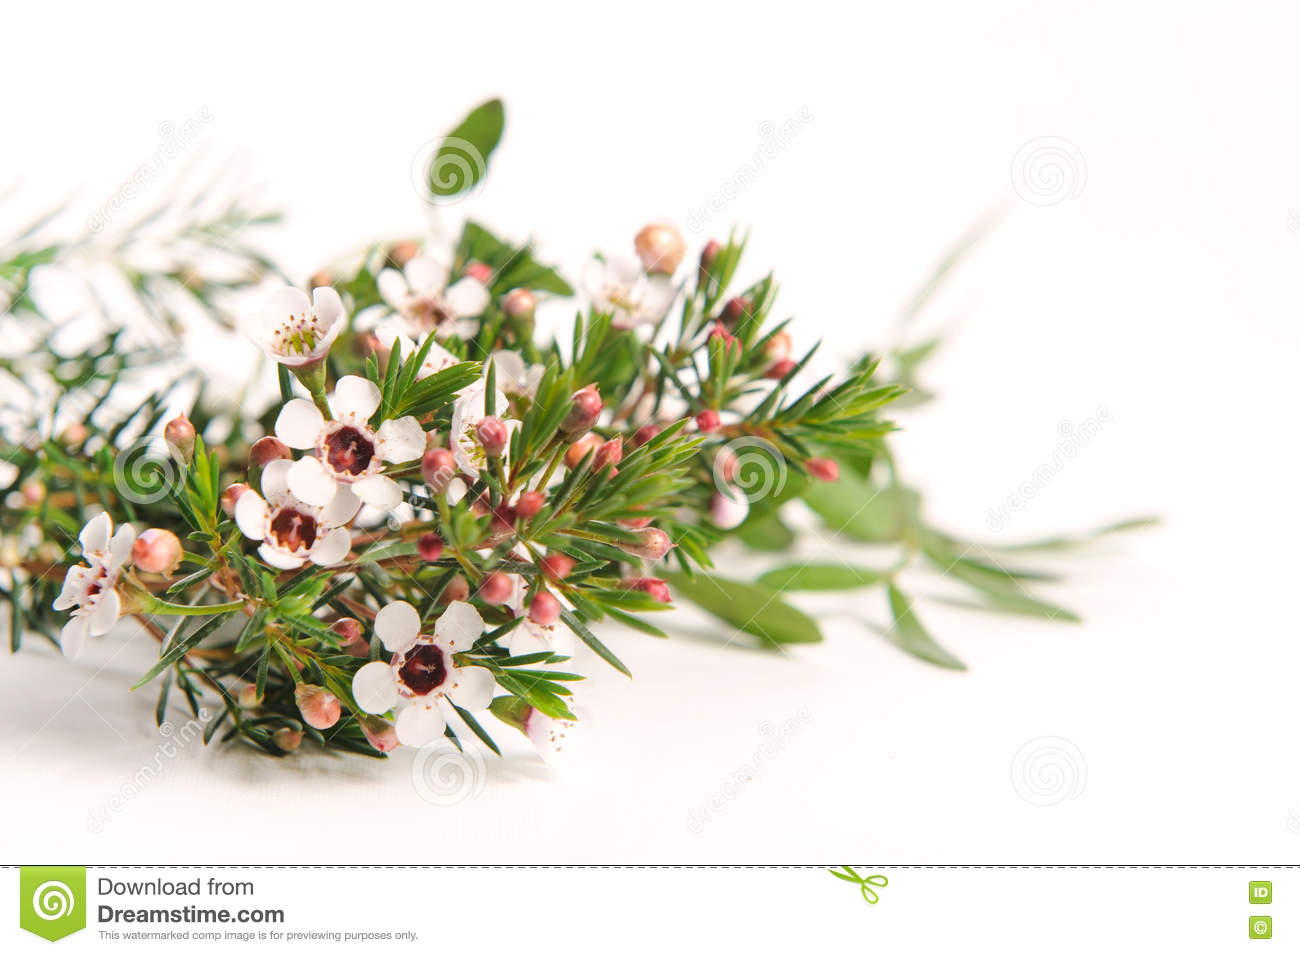 White Chamelaucium Waxflower Stock Photo Image Of Pretty Design